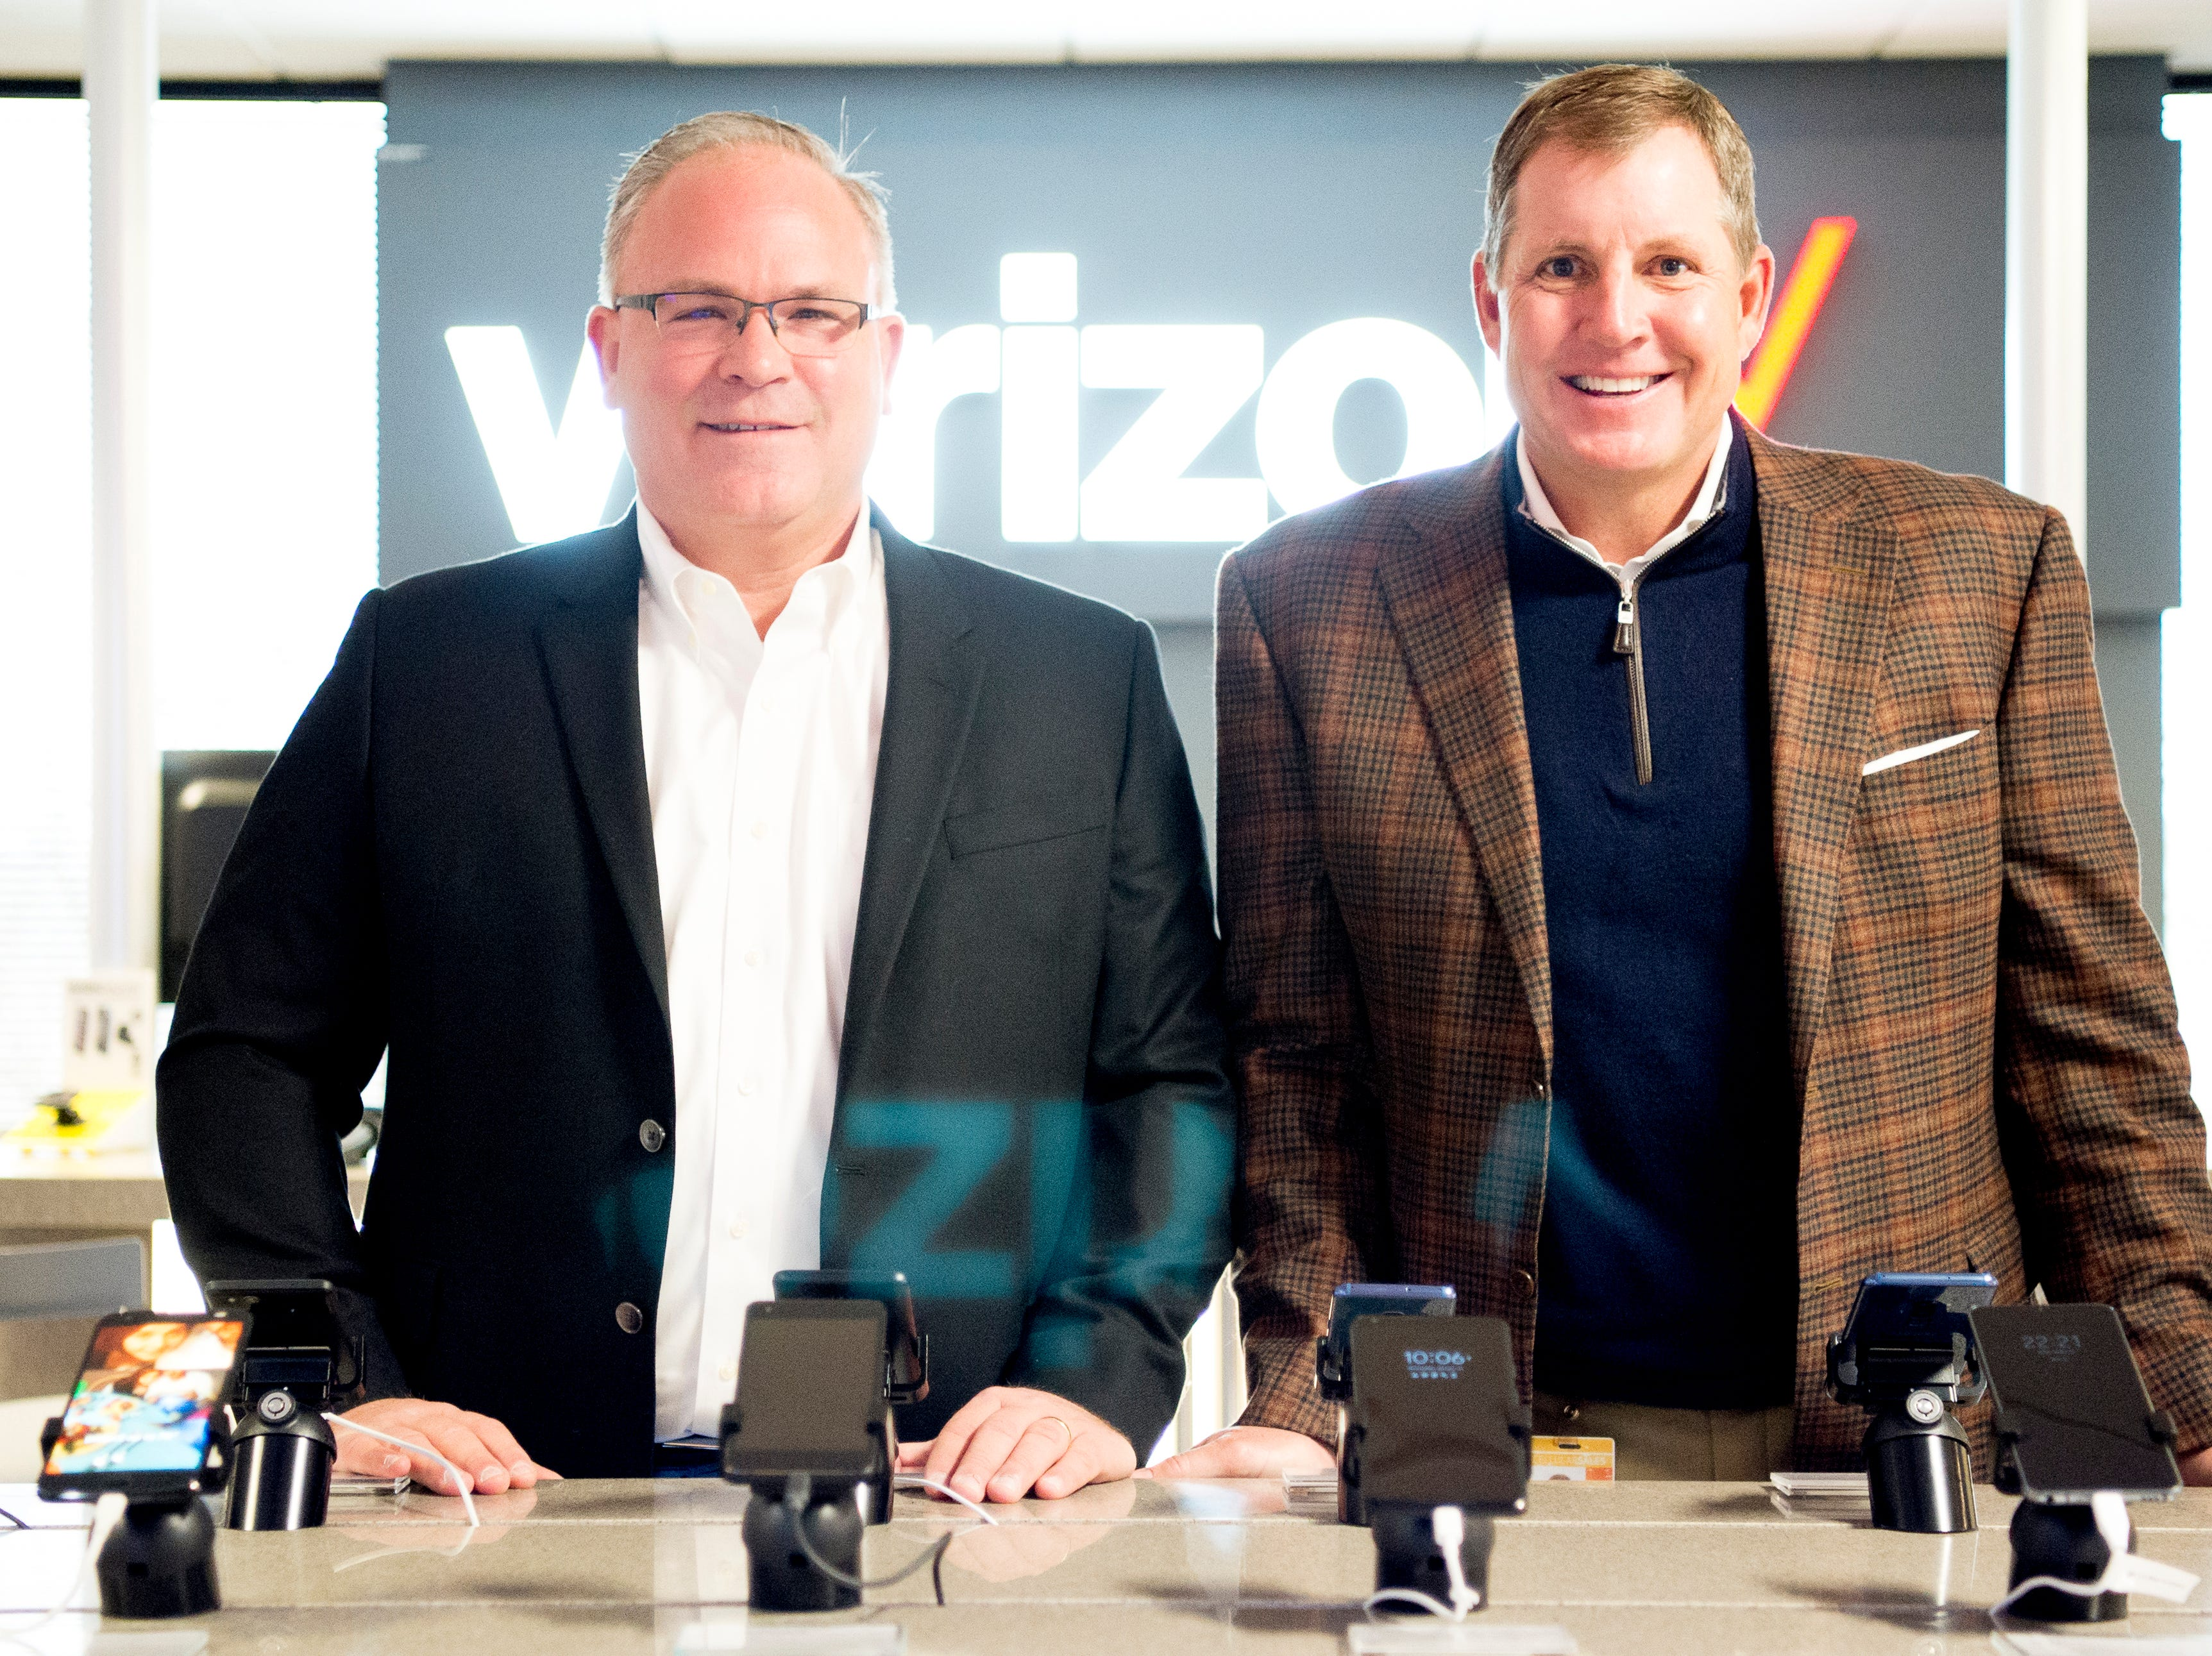 JT Thome, COO, and Dane Scism, CEO, pose for a photo inside the mock Verizon Wireless retail store setup inside the Cellular Sales headquarters on 9040 Executive Park Drive in West Knoxville, Tennessee on Wednesday, January 16, 2019. An authorized agent of Verizon Wireless, Cellular Sales specializes in retail and support for over 700 of Verizon stores in 42 states.